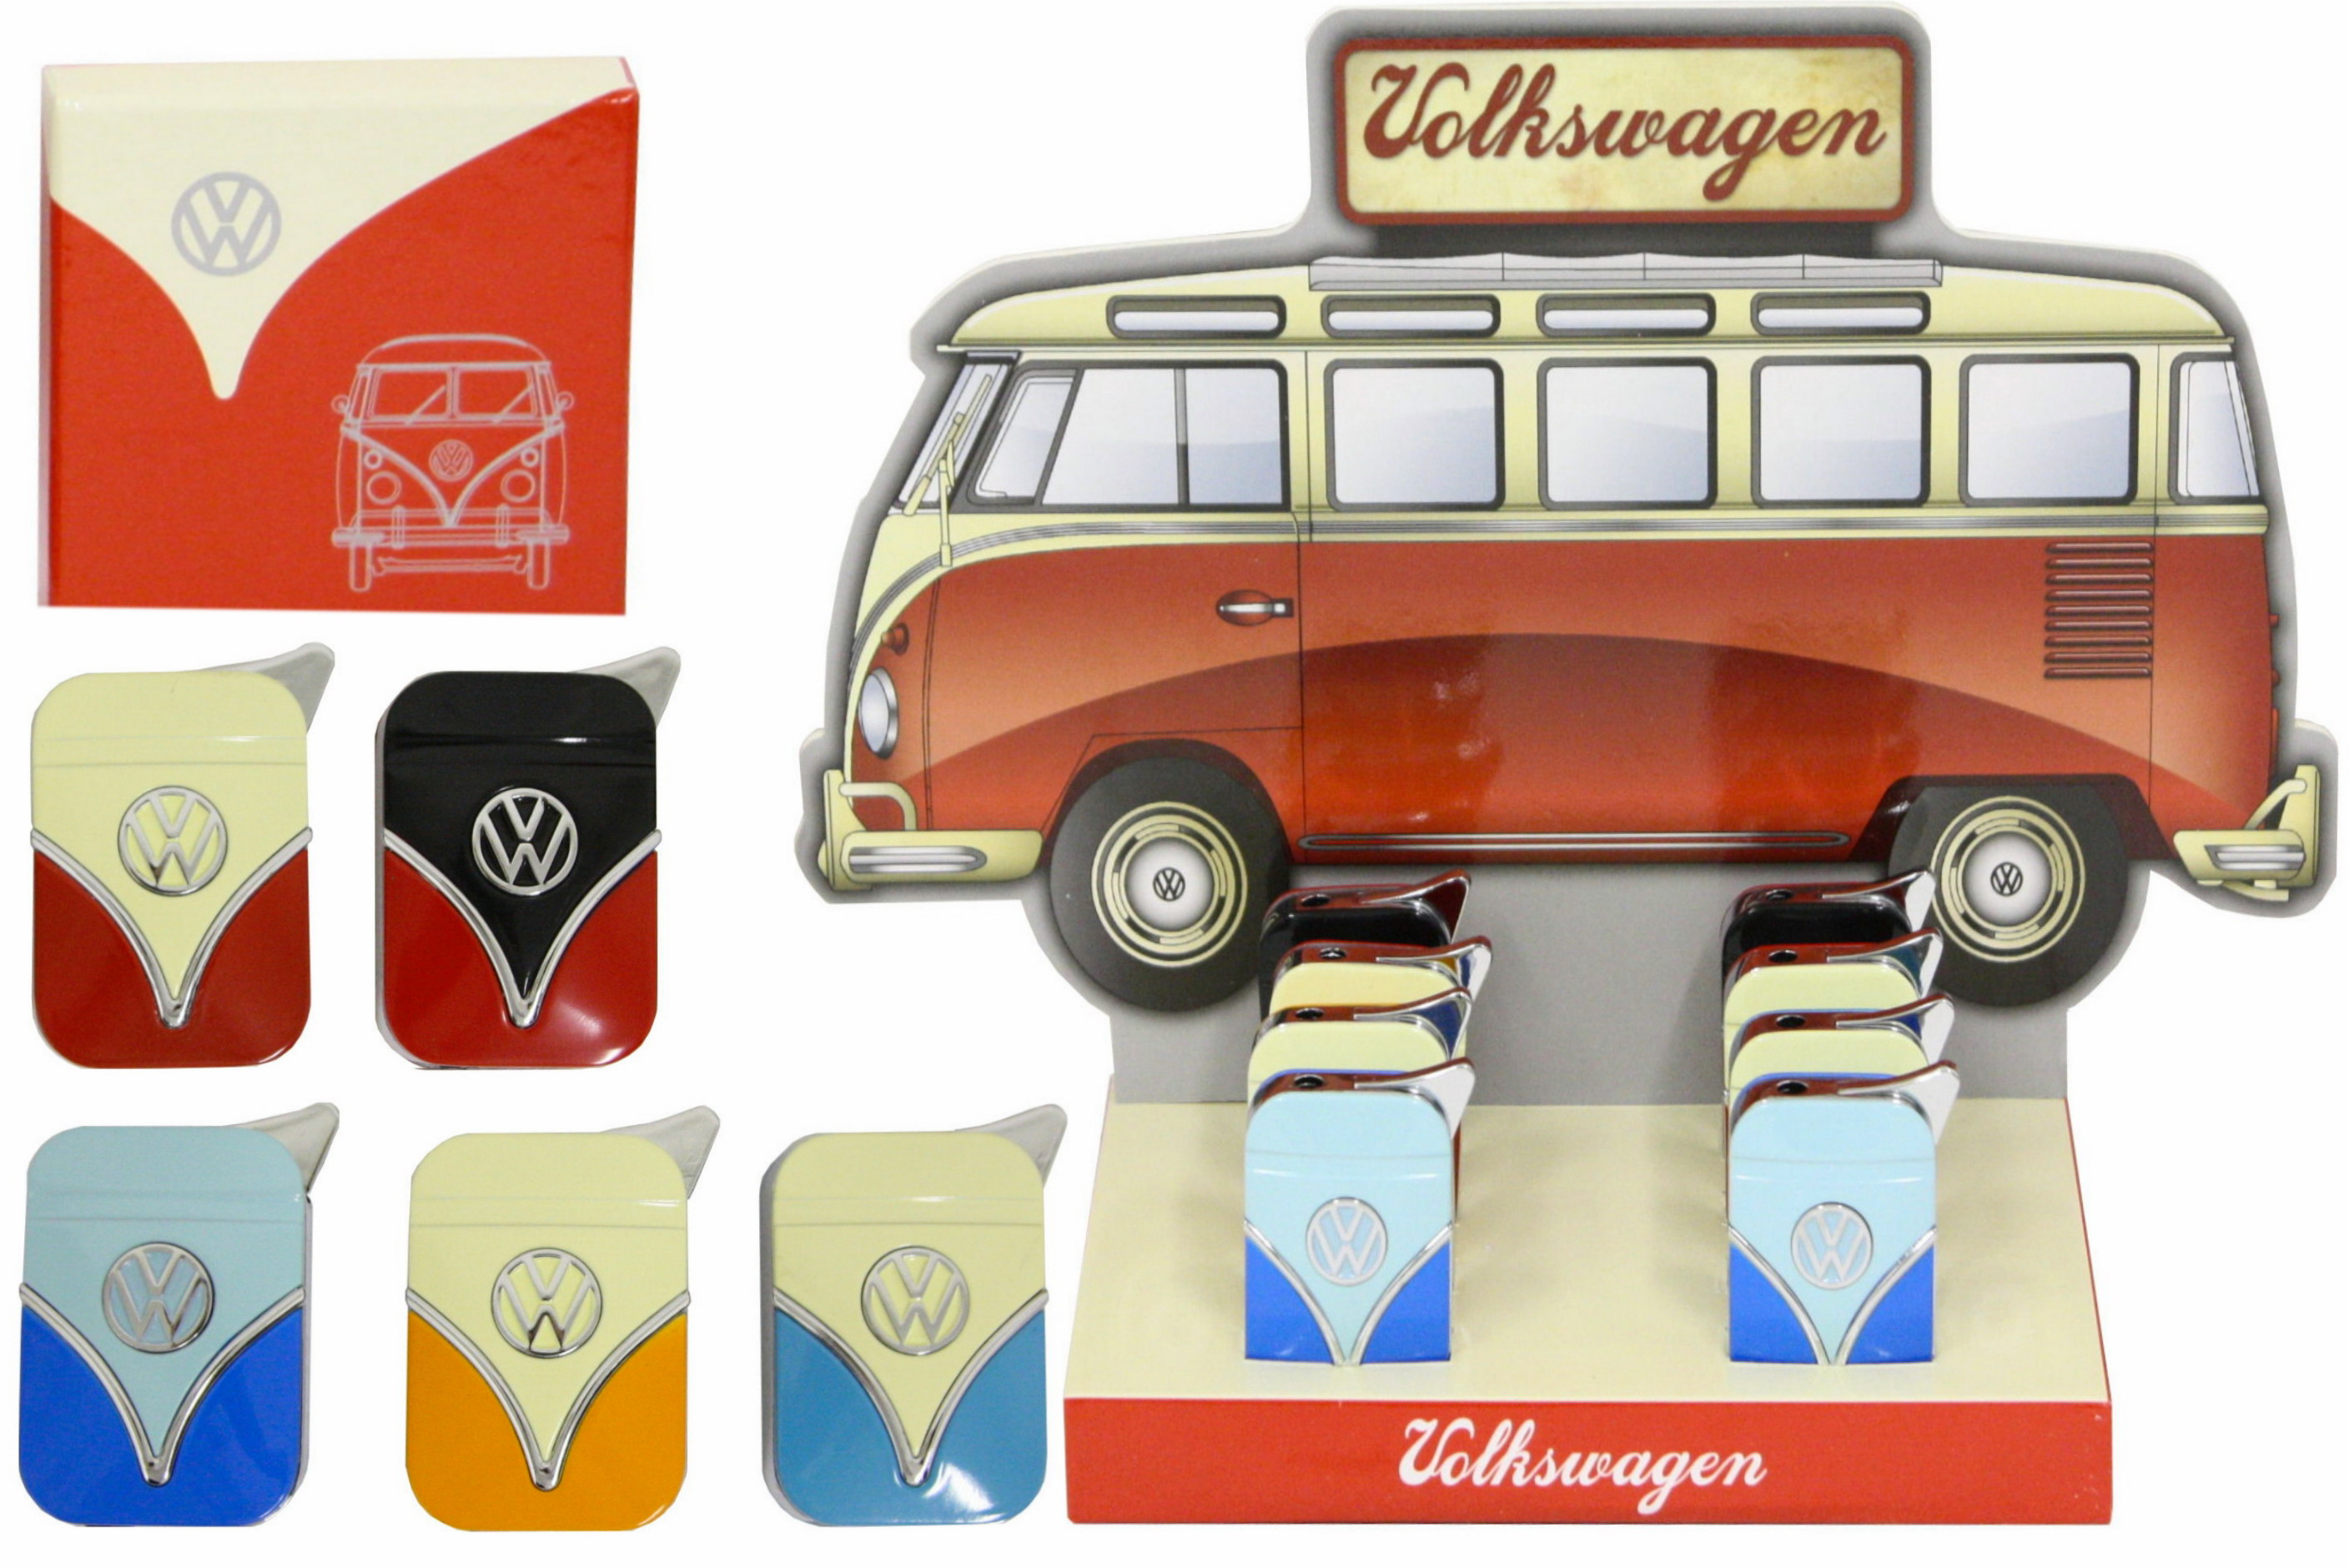 Vw Campervan Metal Lighter With Gift Box & Dbx